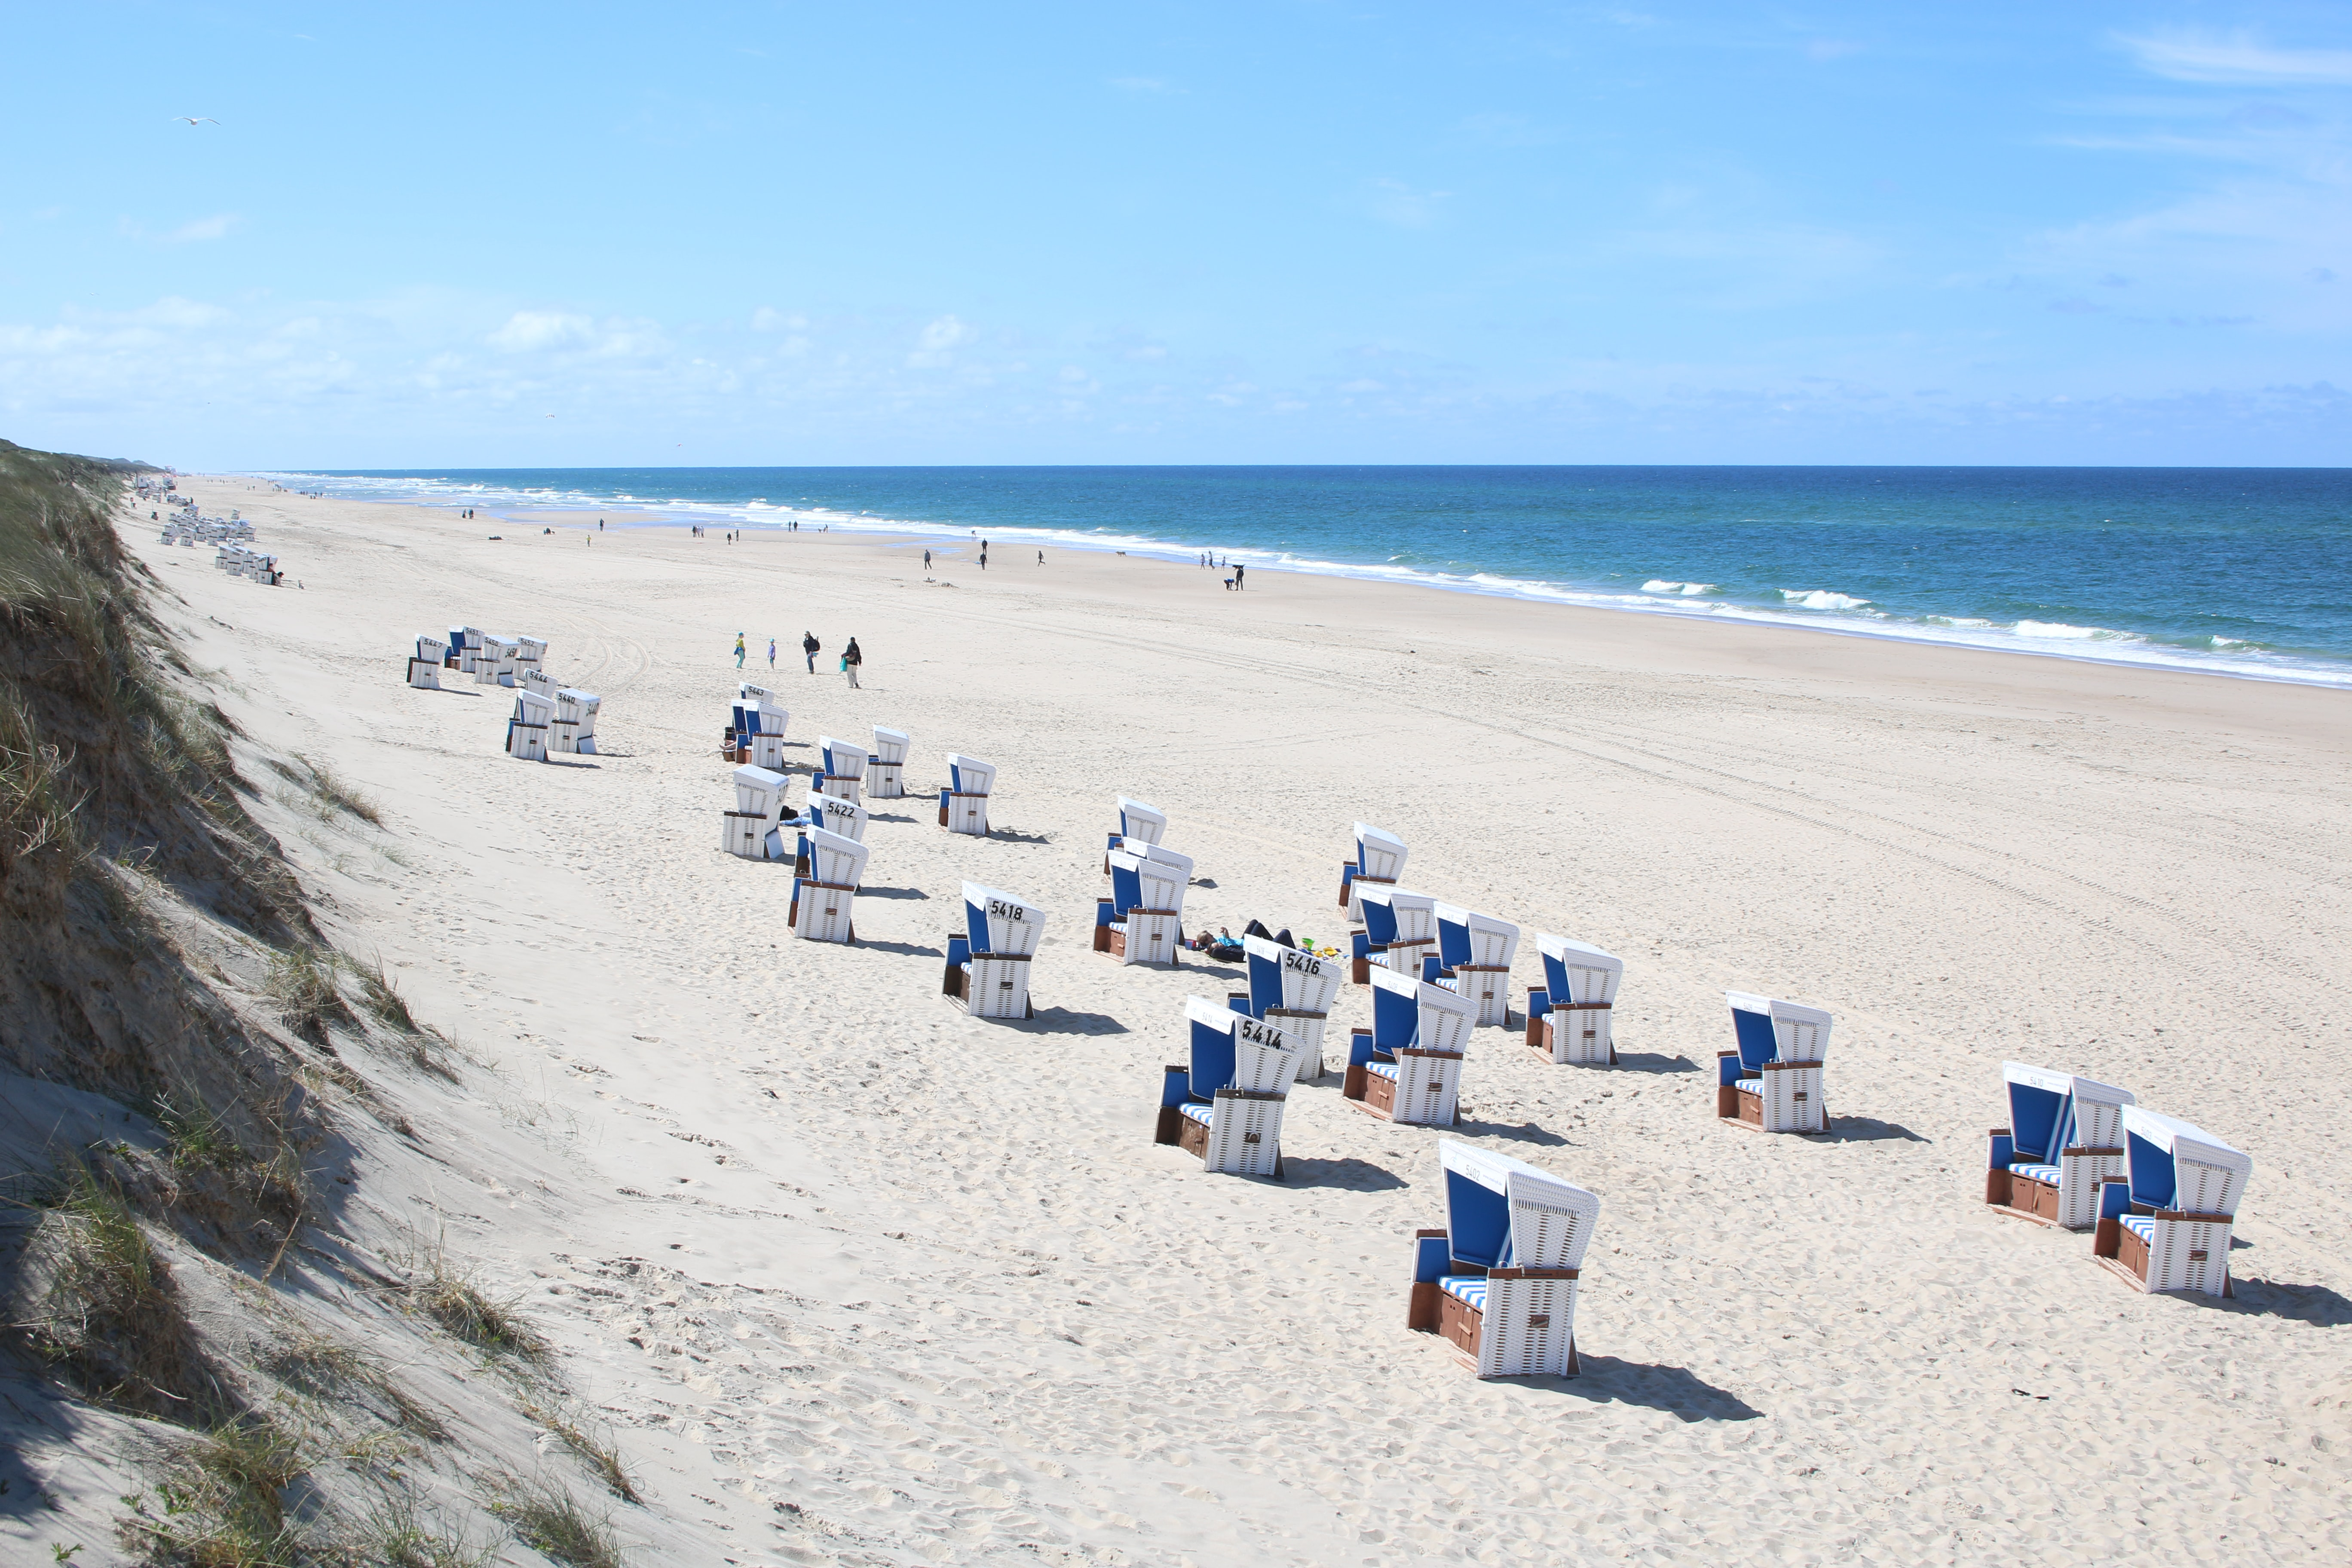 Beach chairs on the sandy shore for summer relaxation and vacation at Rantum